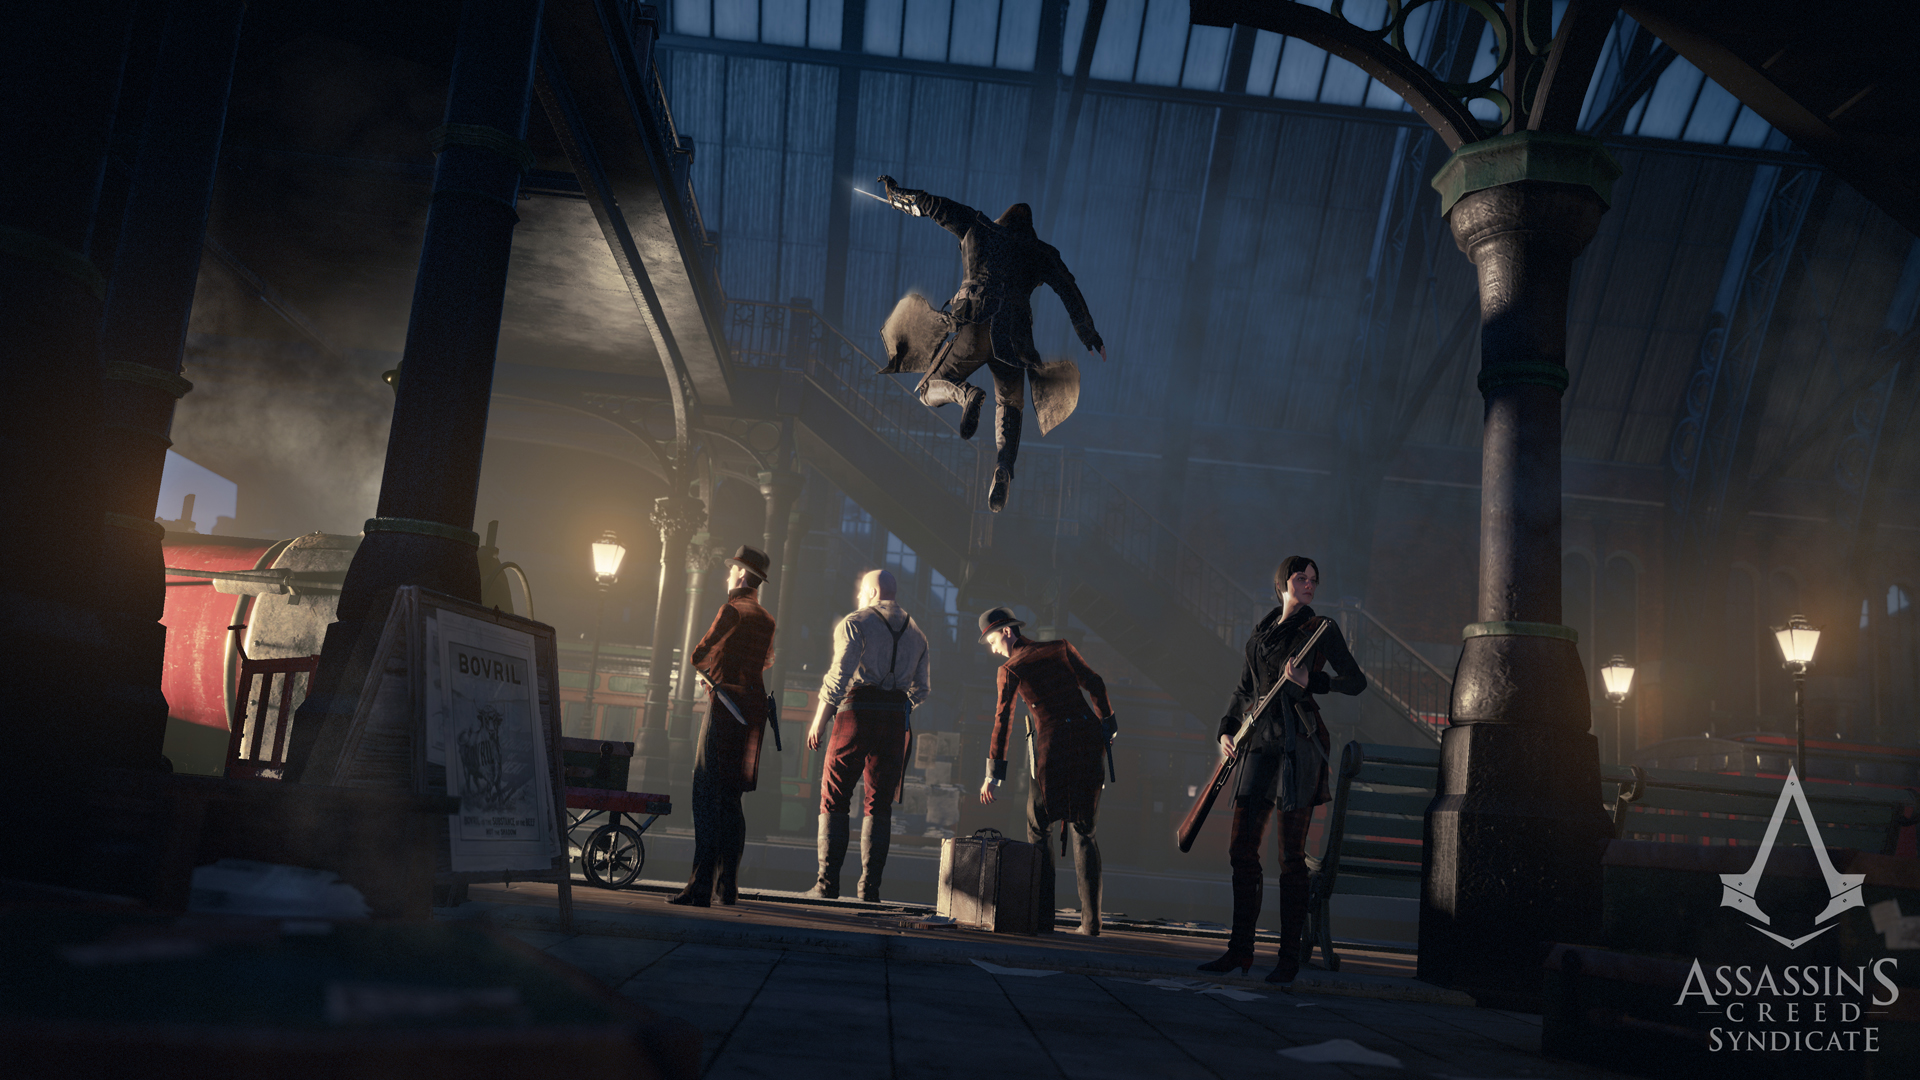 """Assassin's Creed Syndicate"" Will Include Microtransactions - Said to"